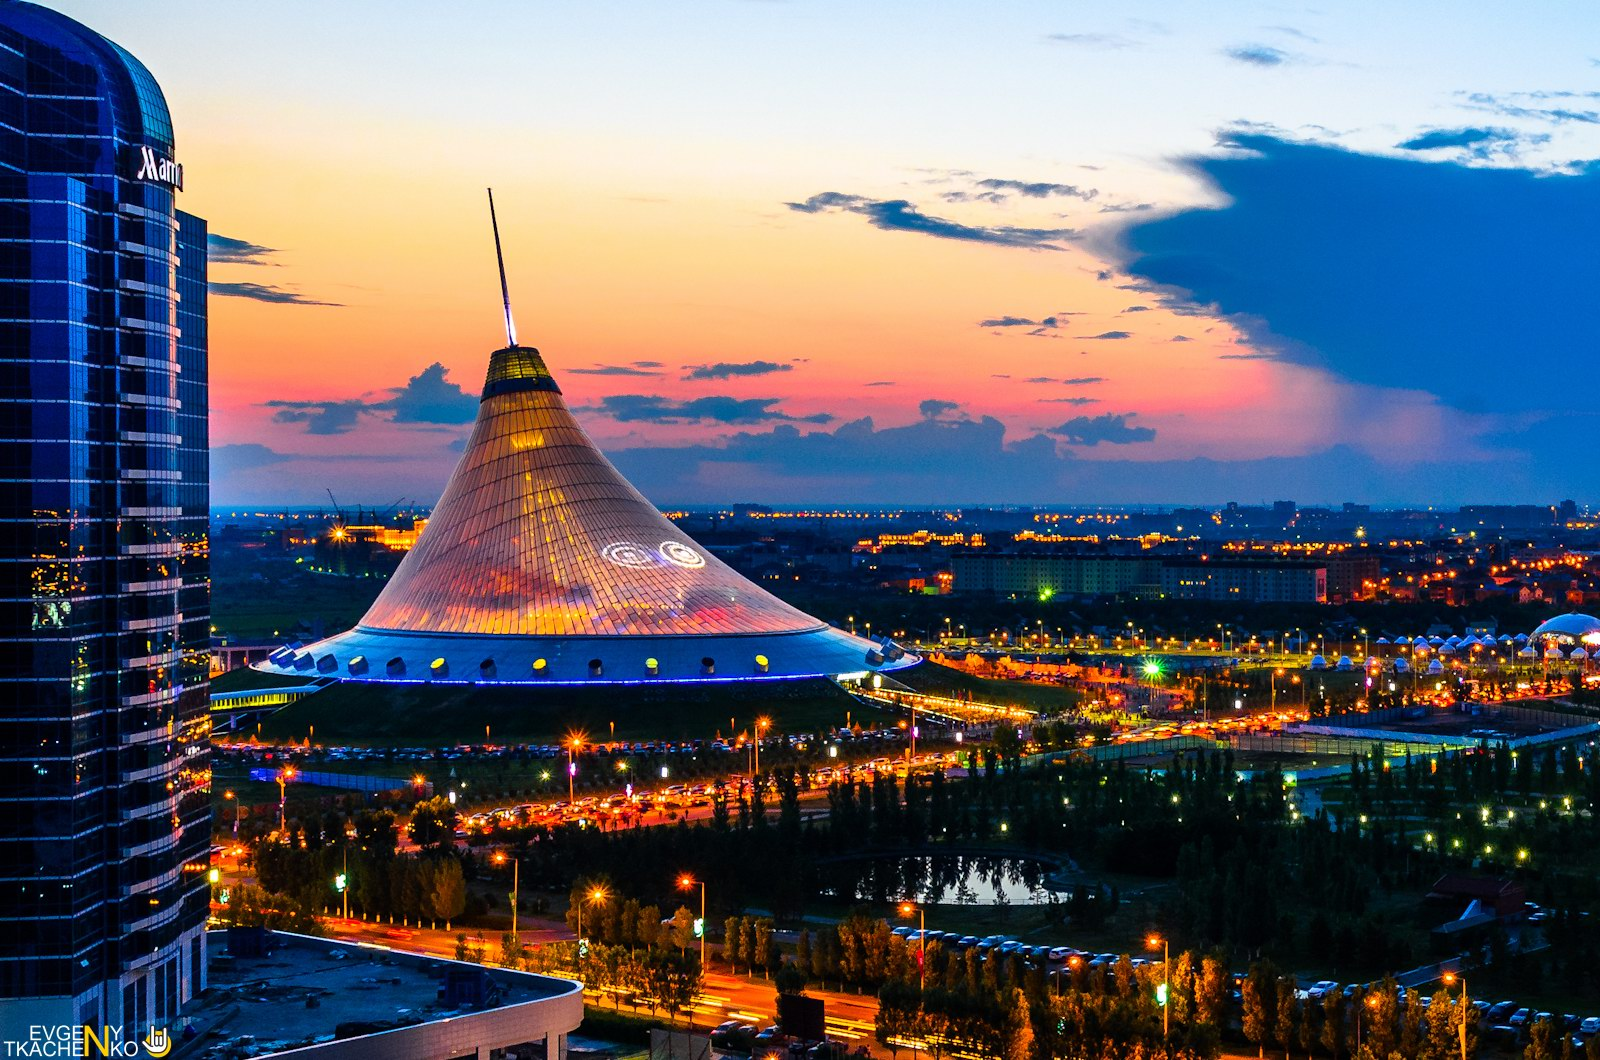 Astana: The Illuminati Capital of Kazakhstan